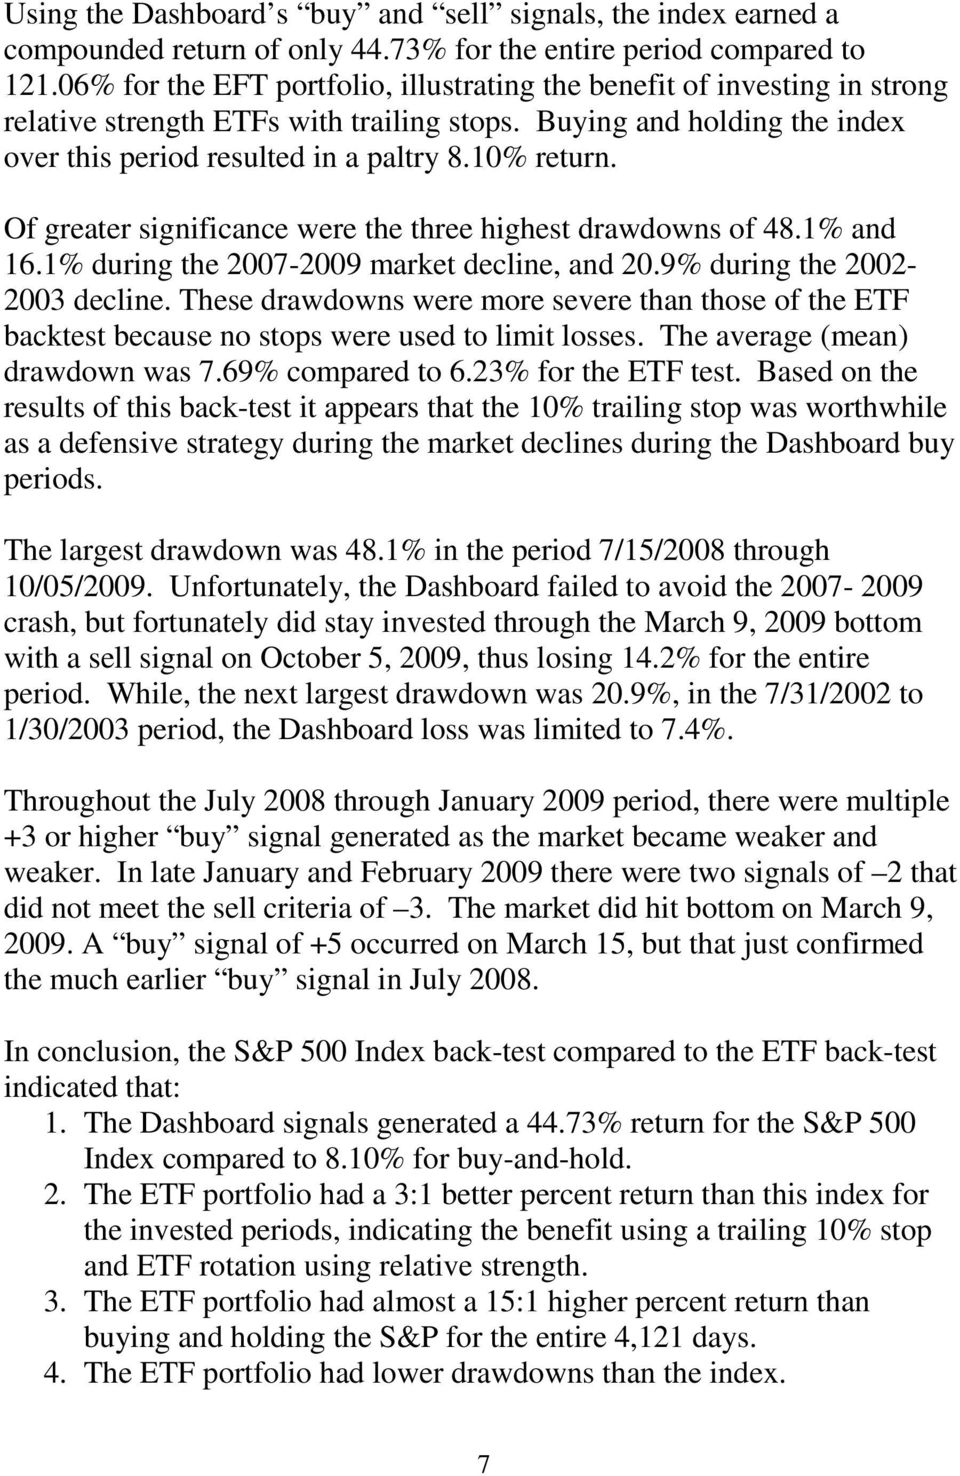 Of greater significance were the three highest drawdowns of 48.1% and 16.1% during the 2007-2009 market decline, and 20.9% during the 2002-2003 decline.